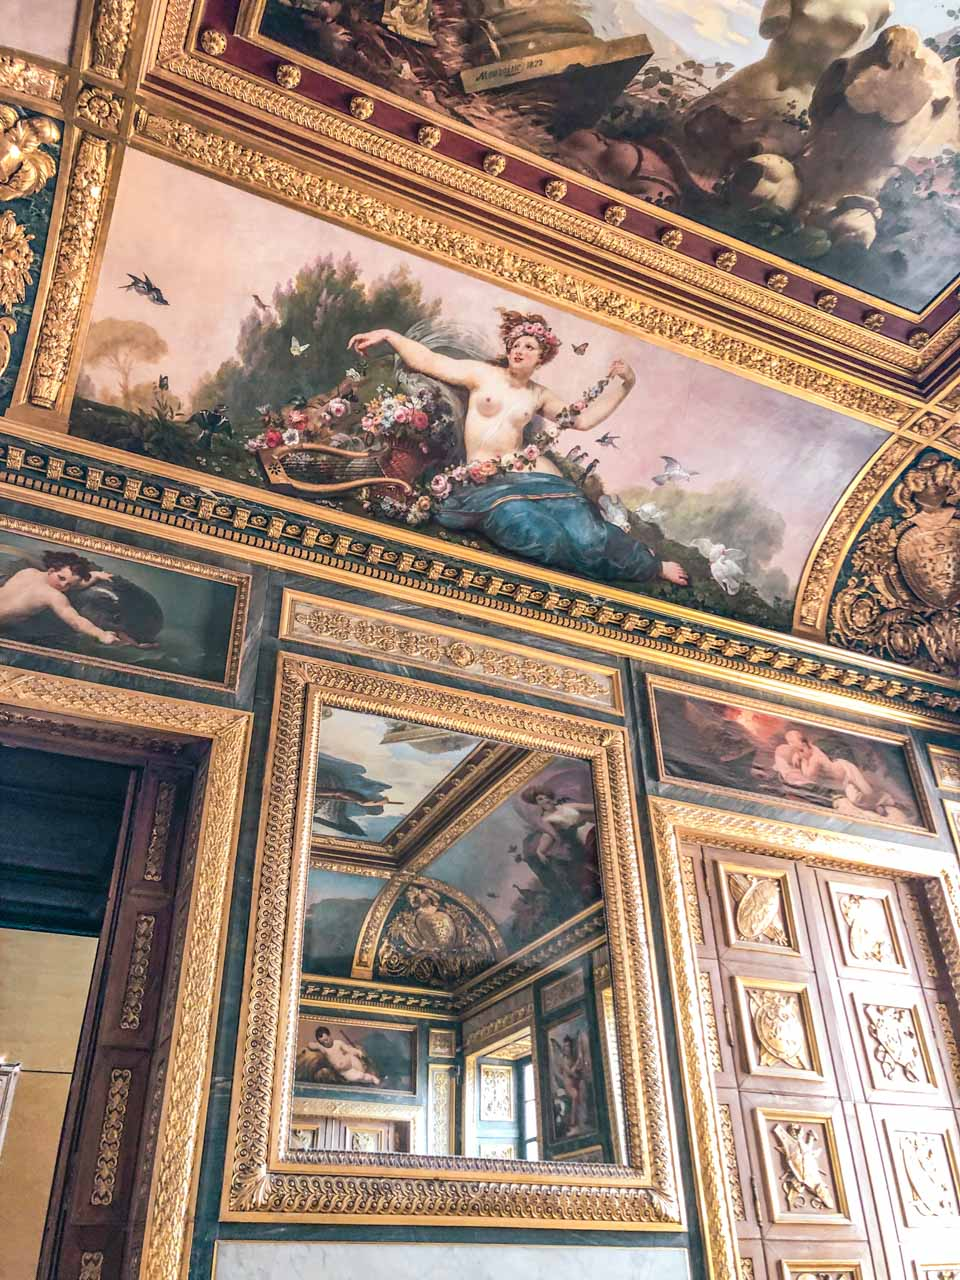 Various frescoes, including one depicting a naked woman, surrounded by gold edgings on the ceiling in the Louvre Museum in Paris, France